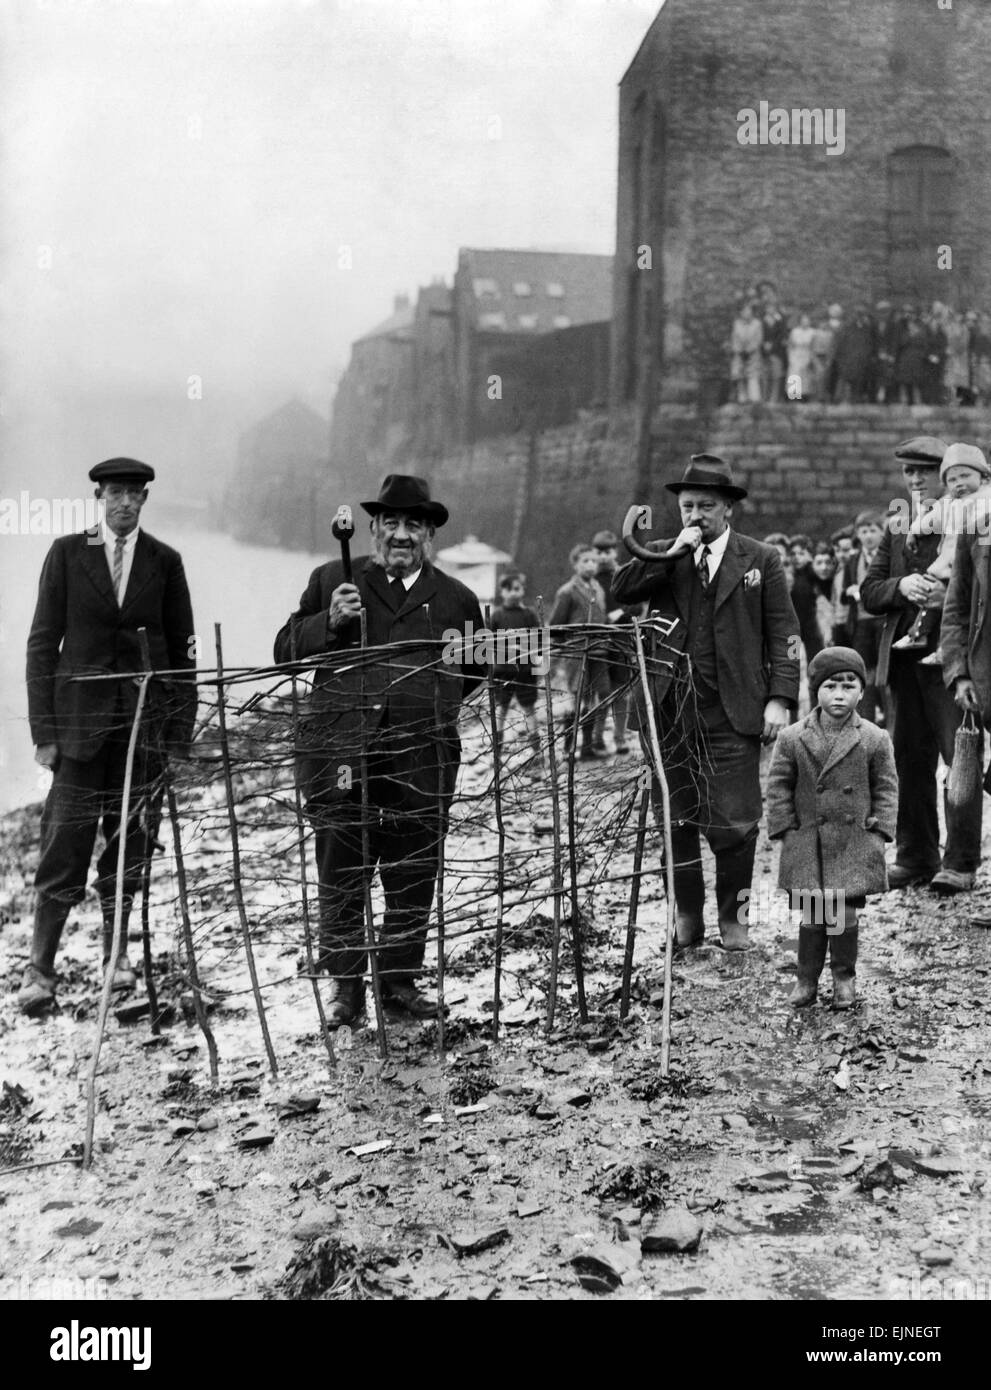 The annual ceremony of planting the Penny Hedge which dates back 800 years seen here being carried out in Whitby, - Stock Image